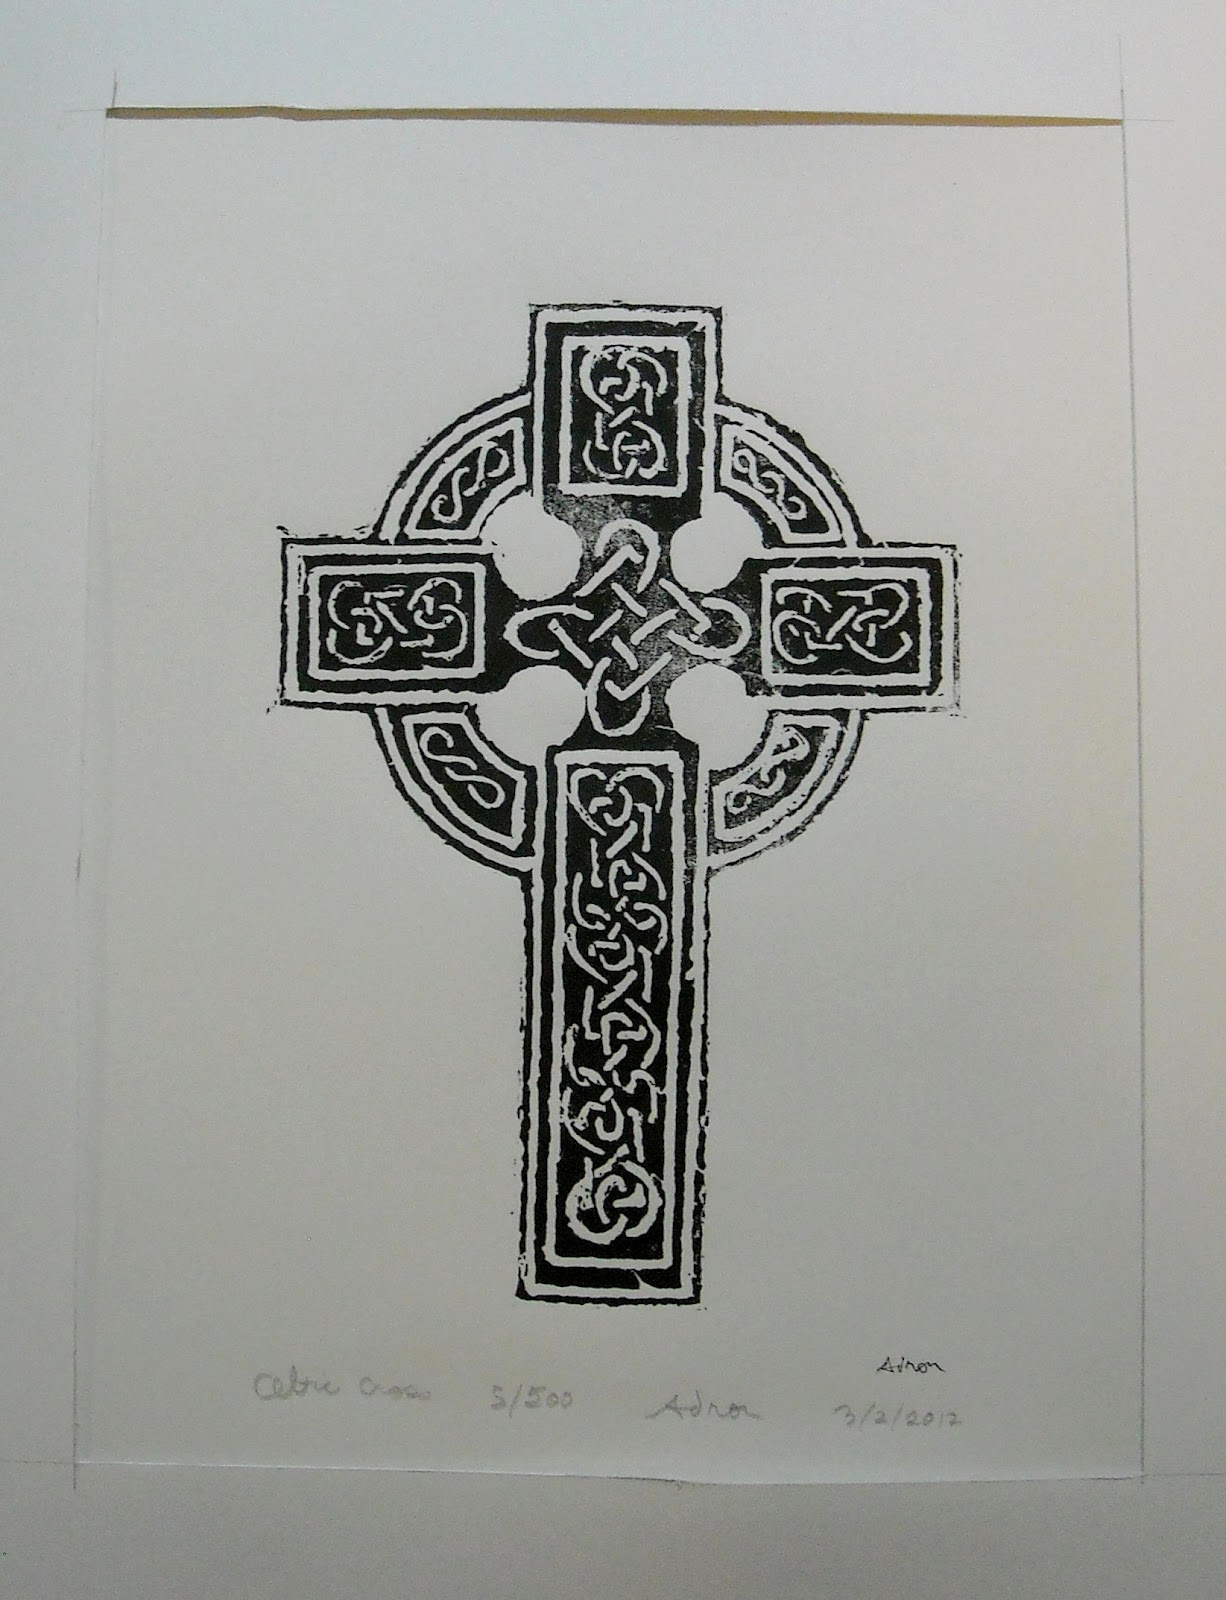 artist adron celtic cross hand made 14x11 print by adron